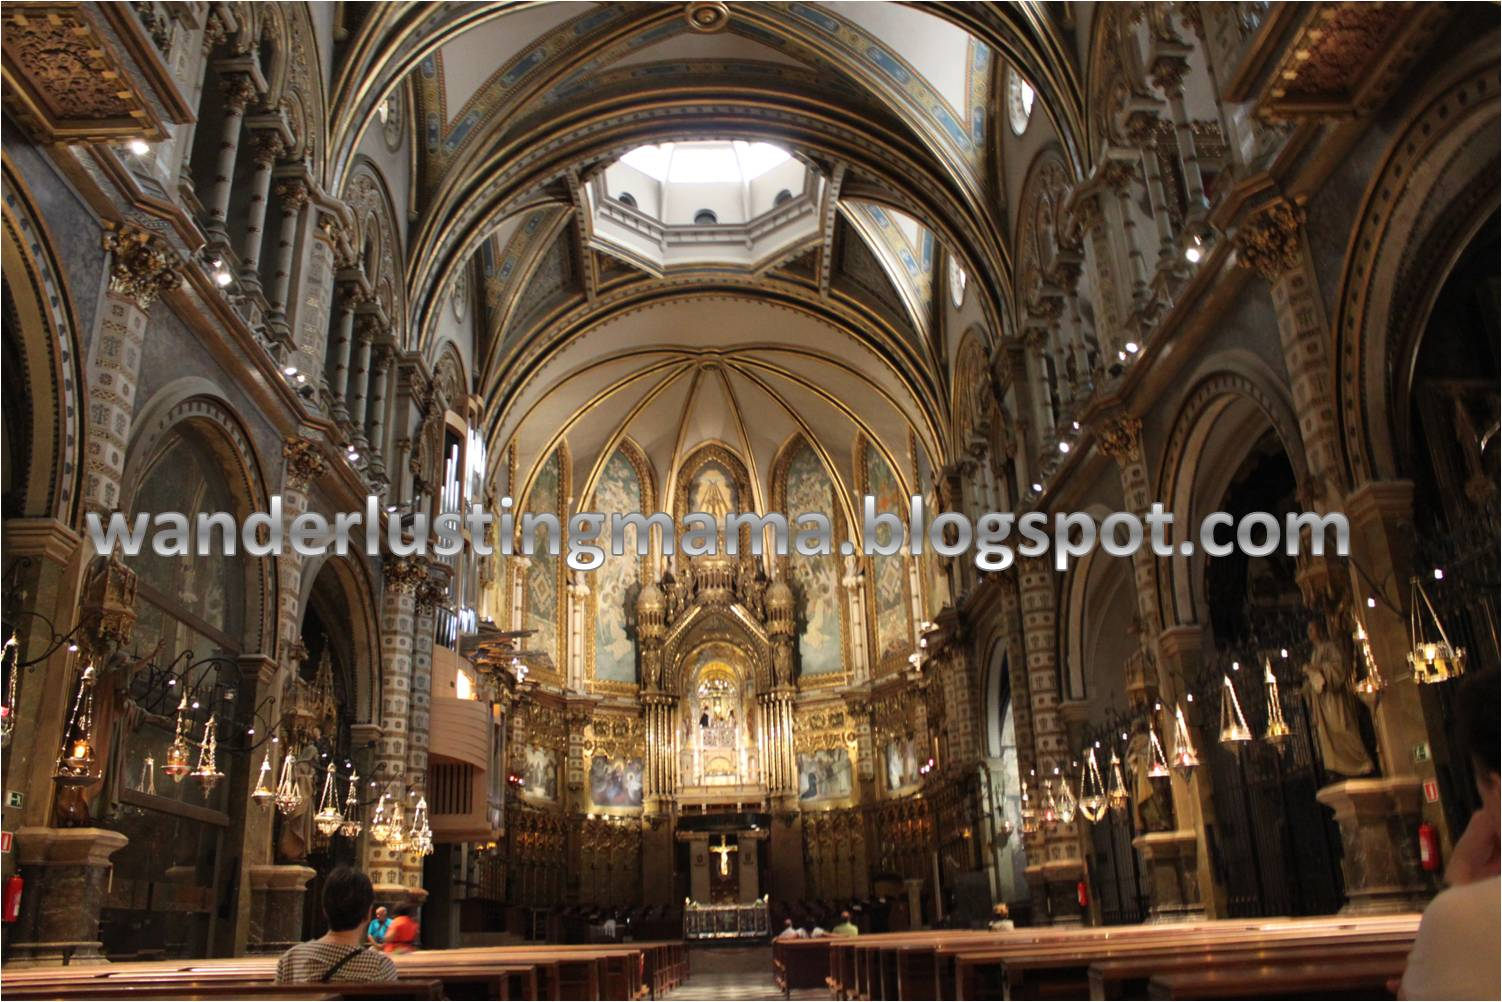 Montserrat: a must visit if you are in barcelona